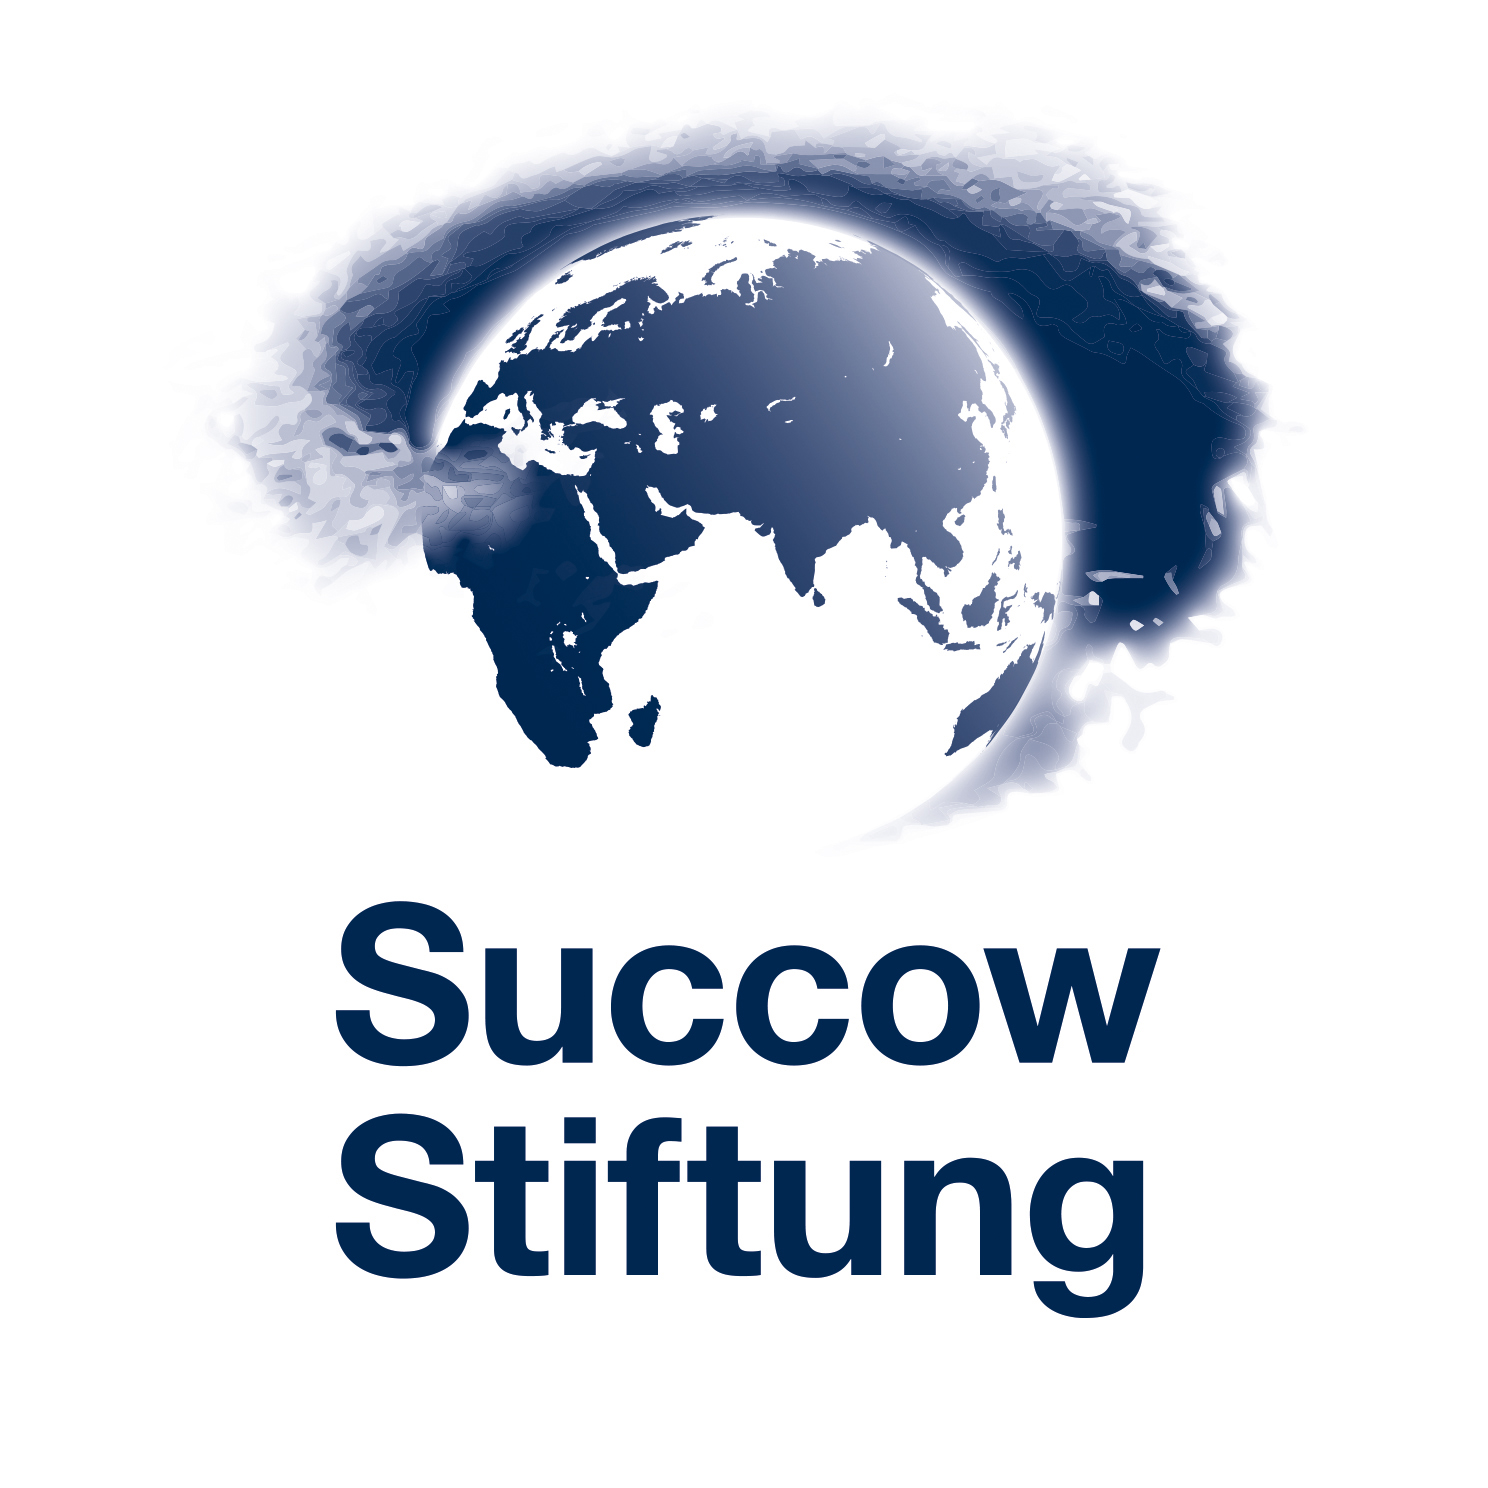 Michael Succow Stiftung